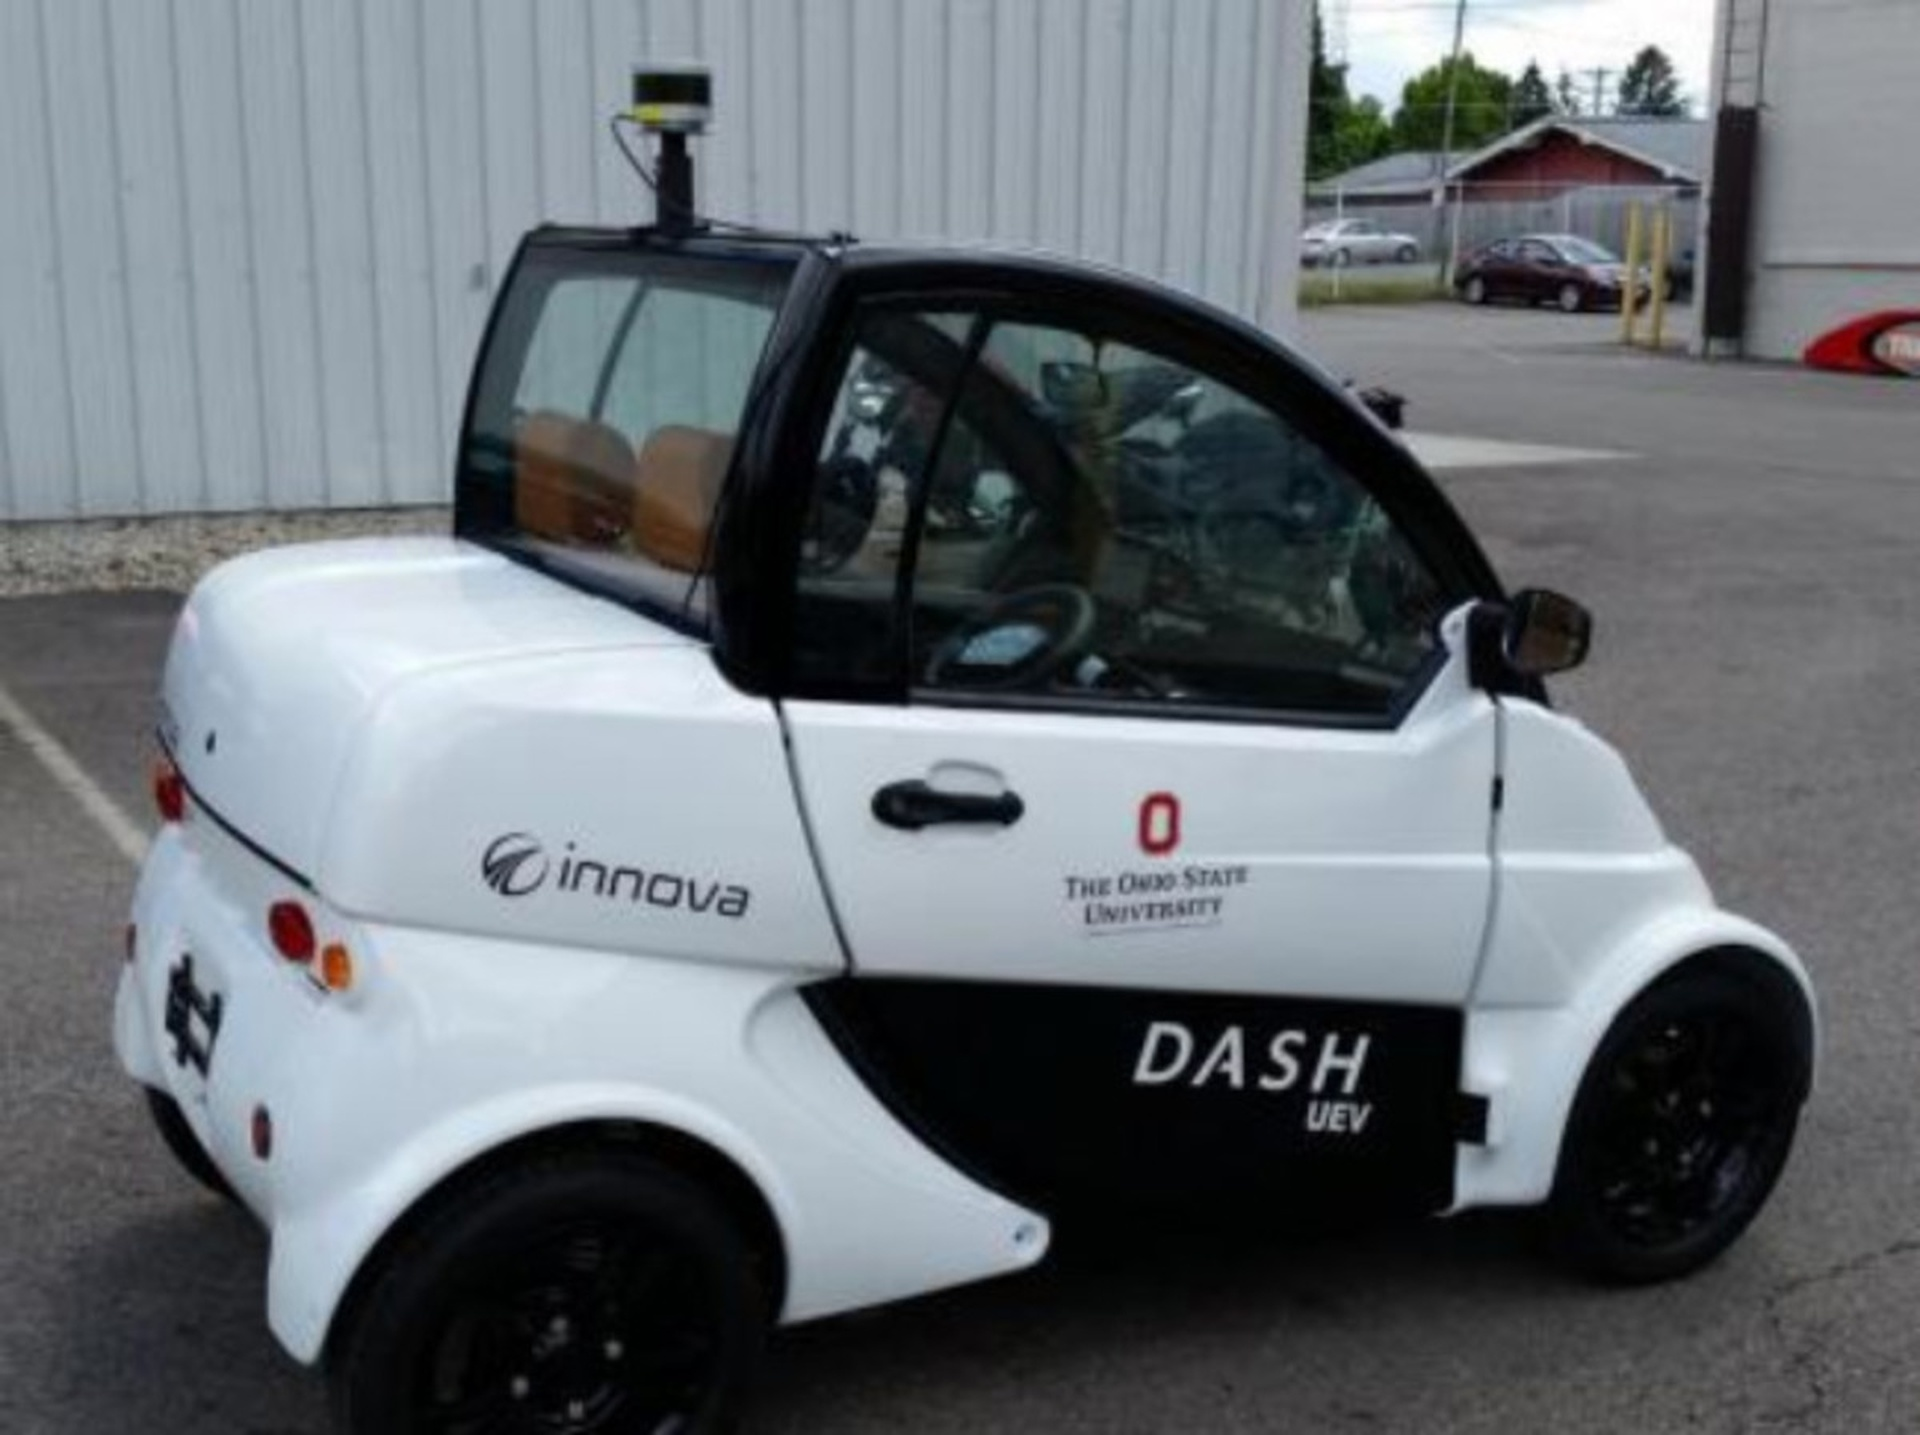 The two-seater Dash EV electric vehicle, donated by Innova UEV, is testing autonomous driving